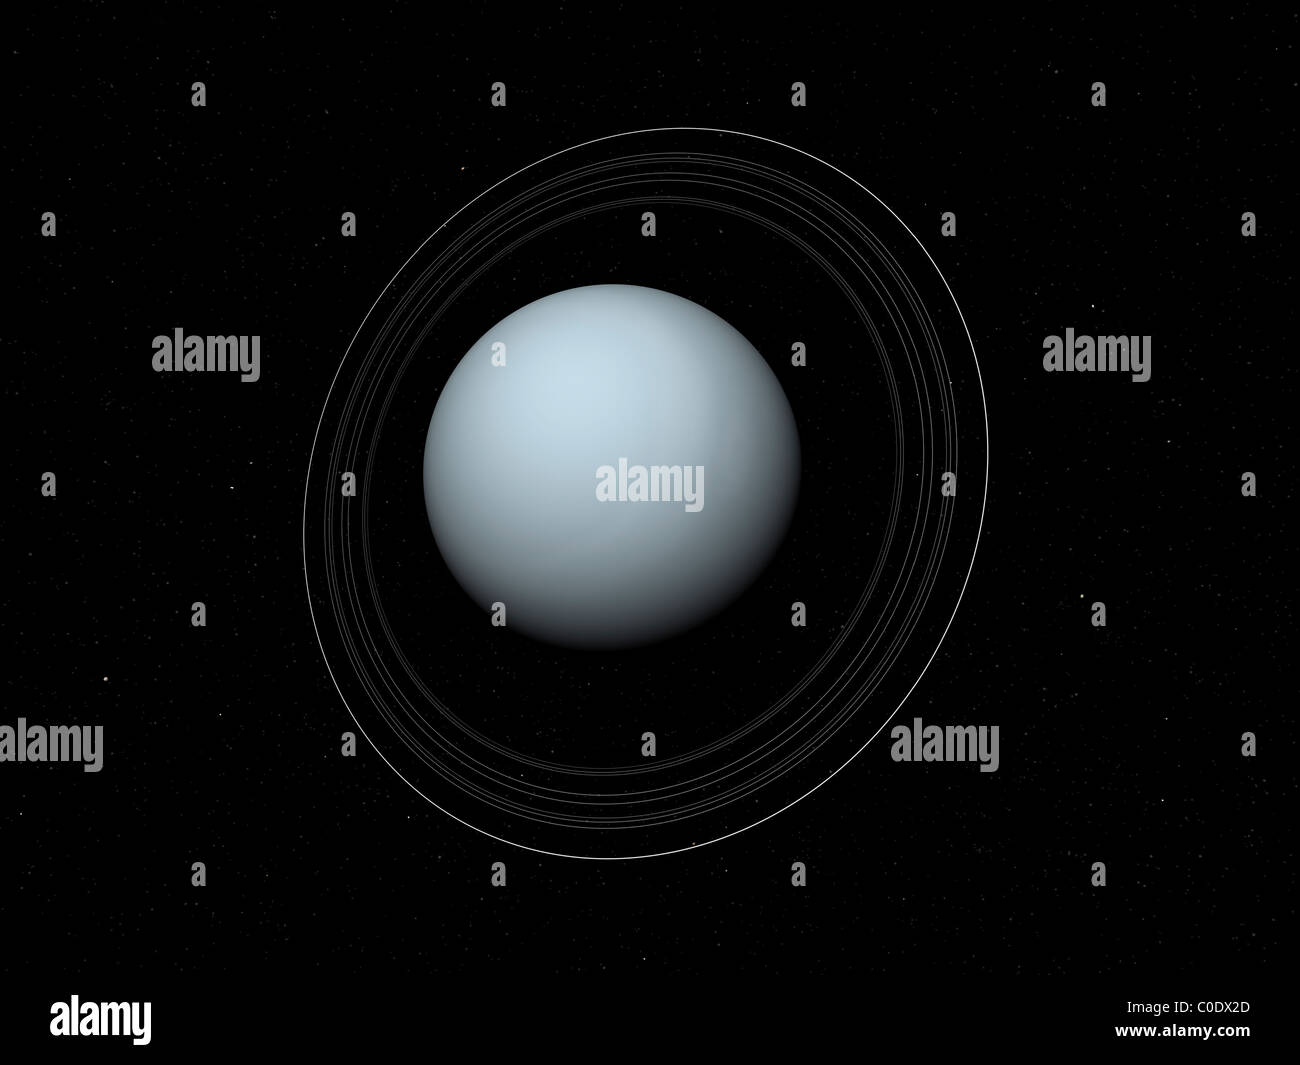 Artist's concept of Uranus and its rings. - Stock Image